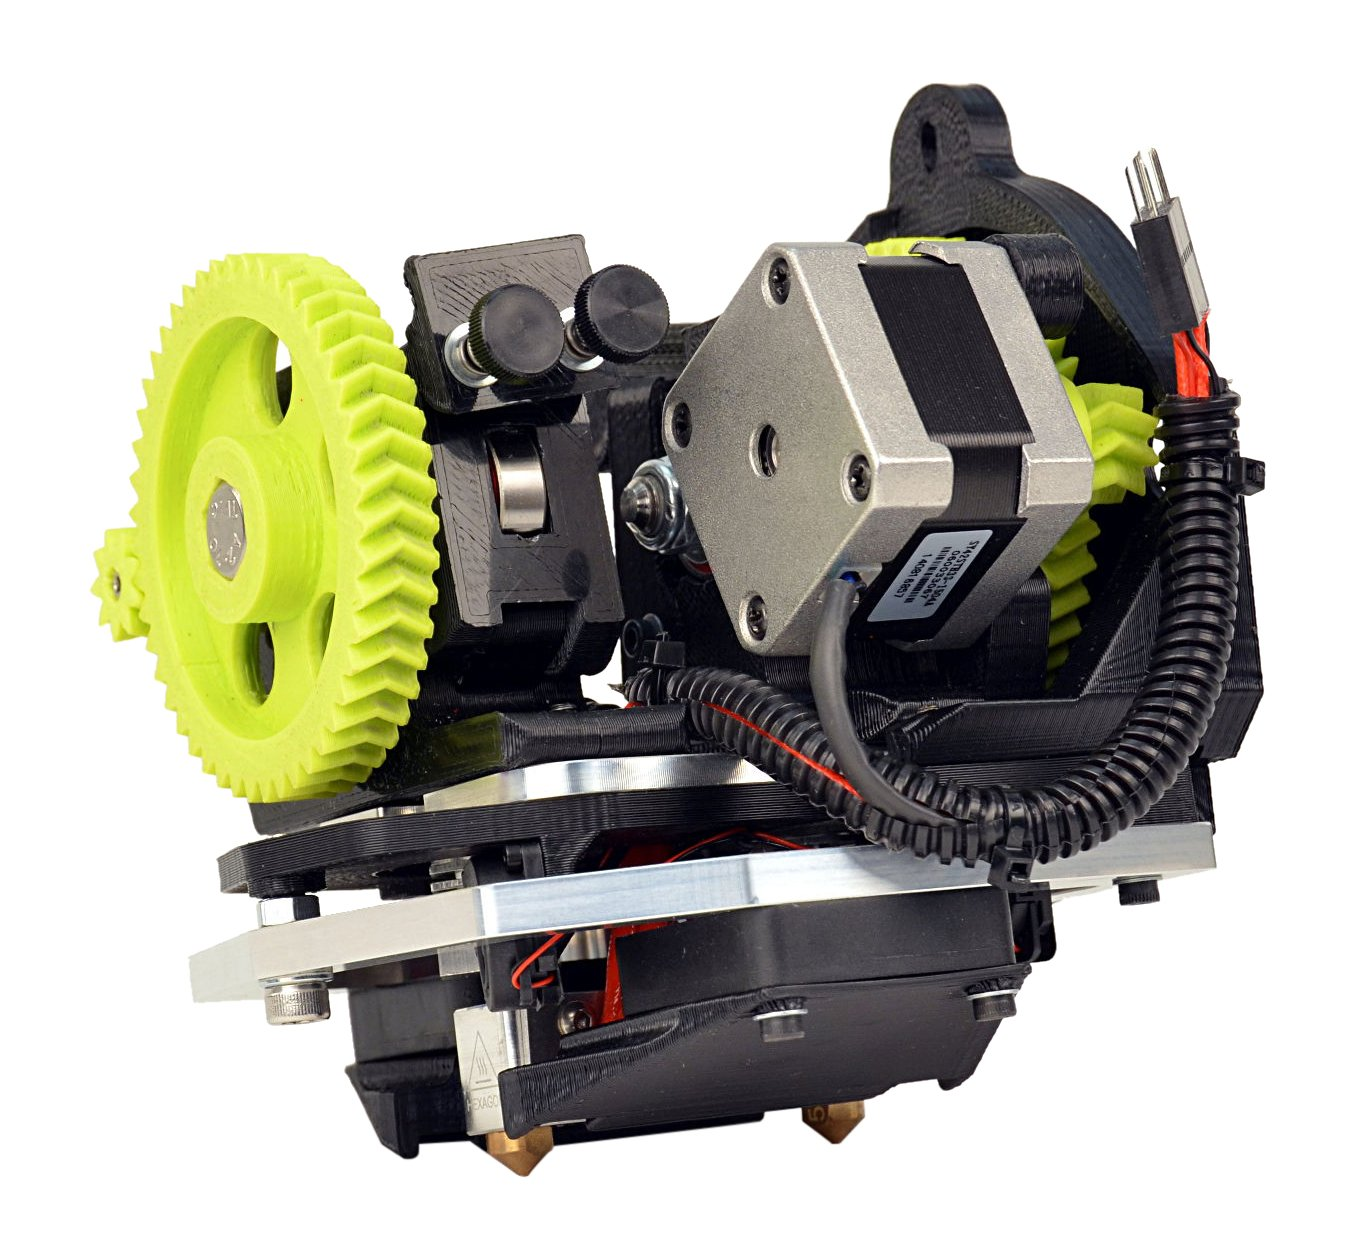 LulzBot Dual Extruder Tool Head, V2 by LulzBot